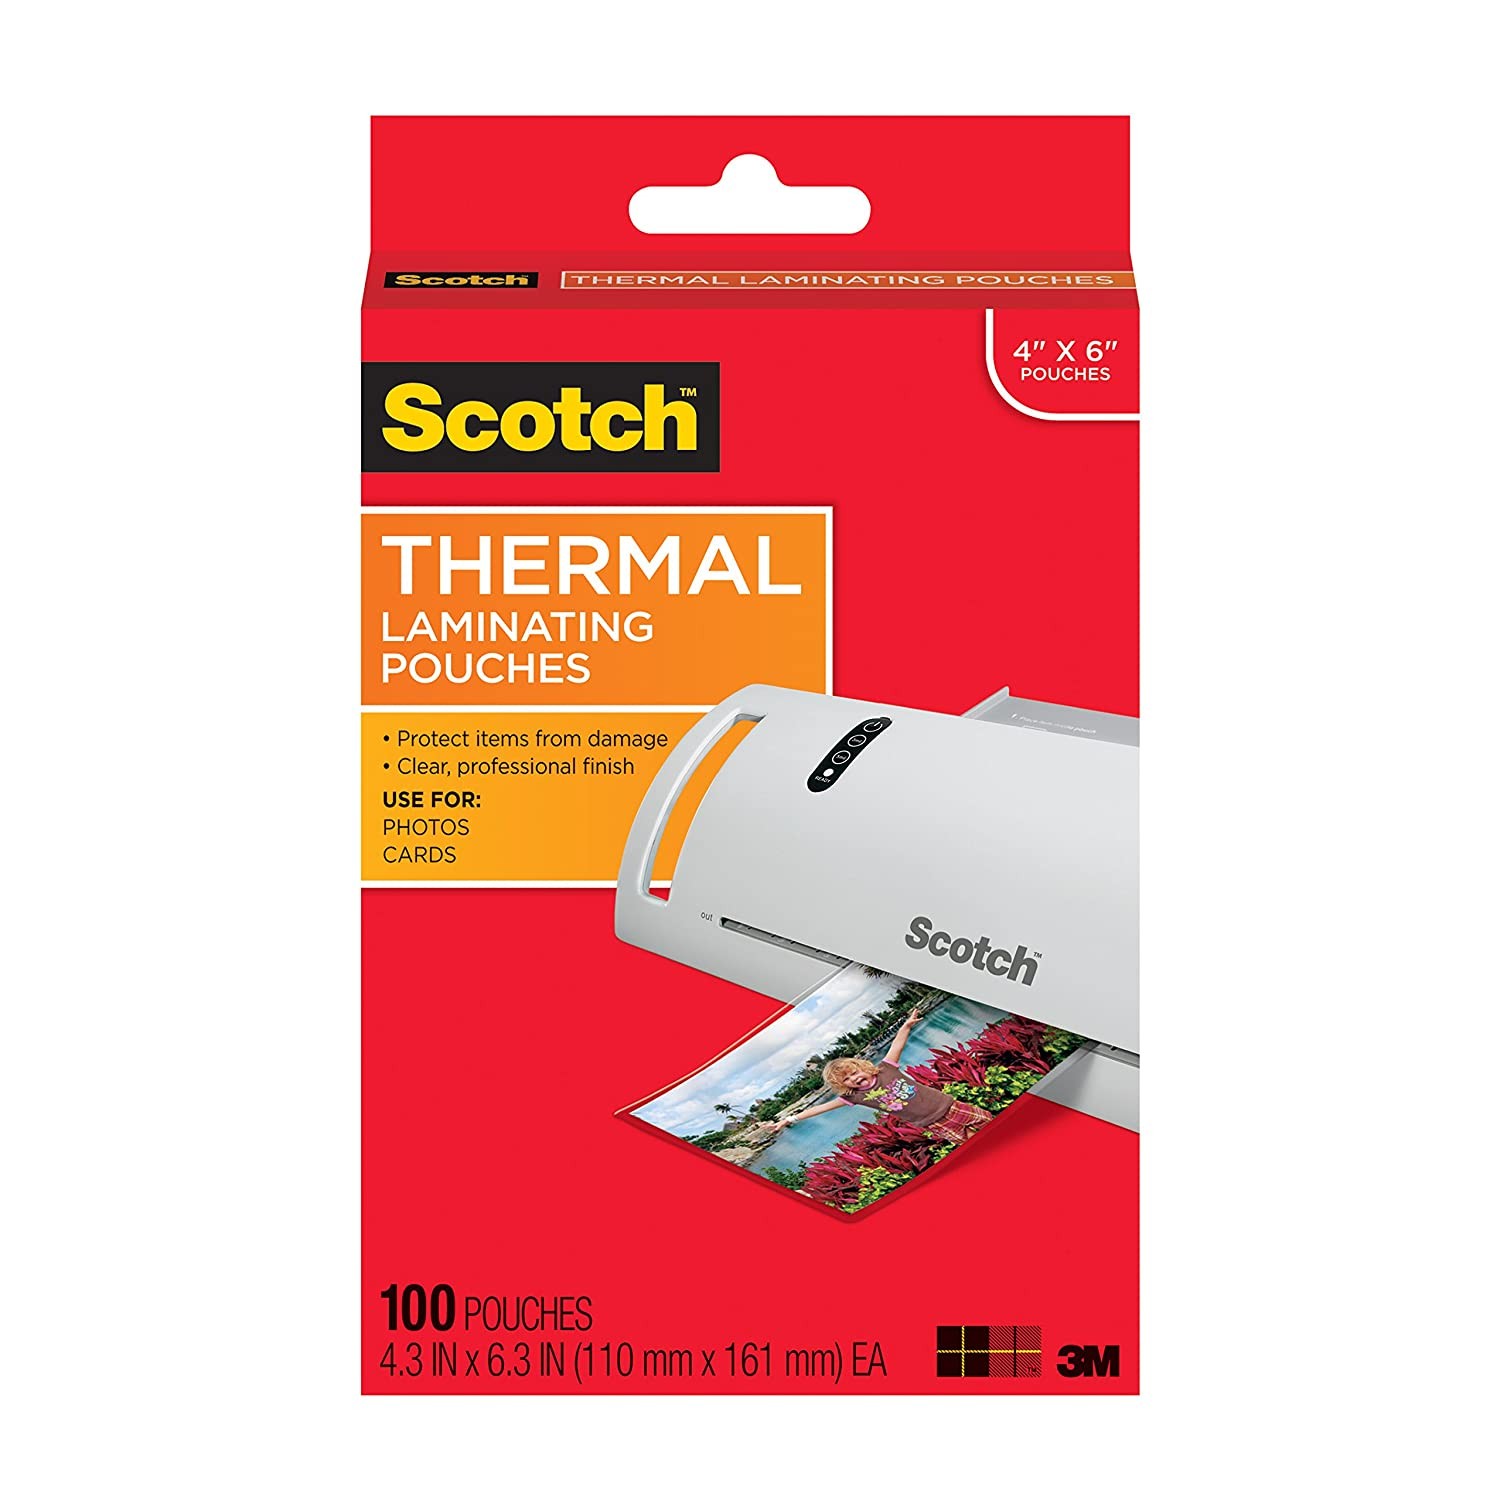 Scotch Thermal Laminating Pouches, 4.37 Inches x 6.36 Inches, 20 Pouches (TP5900-20) 3M